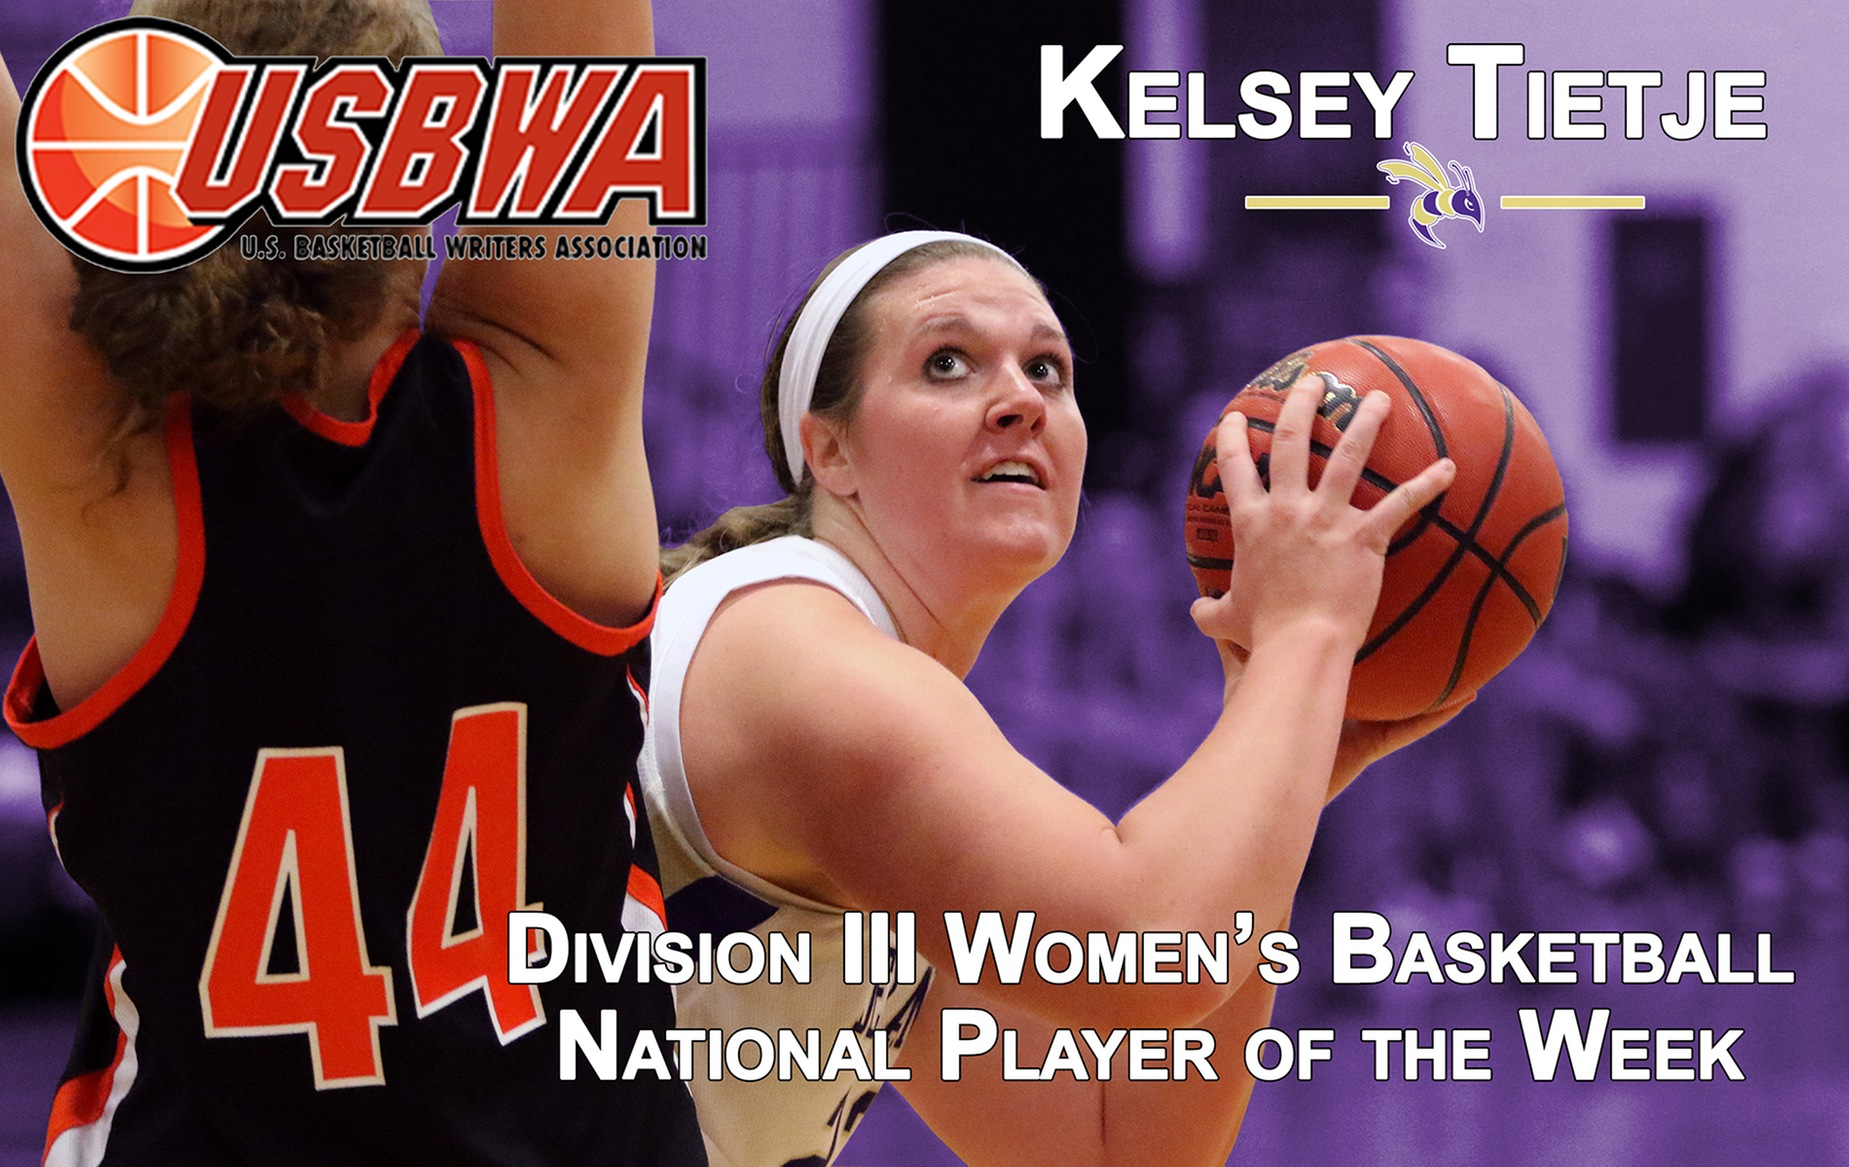 Tietje Adds Another Player of the Week Honor